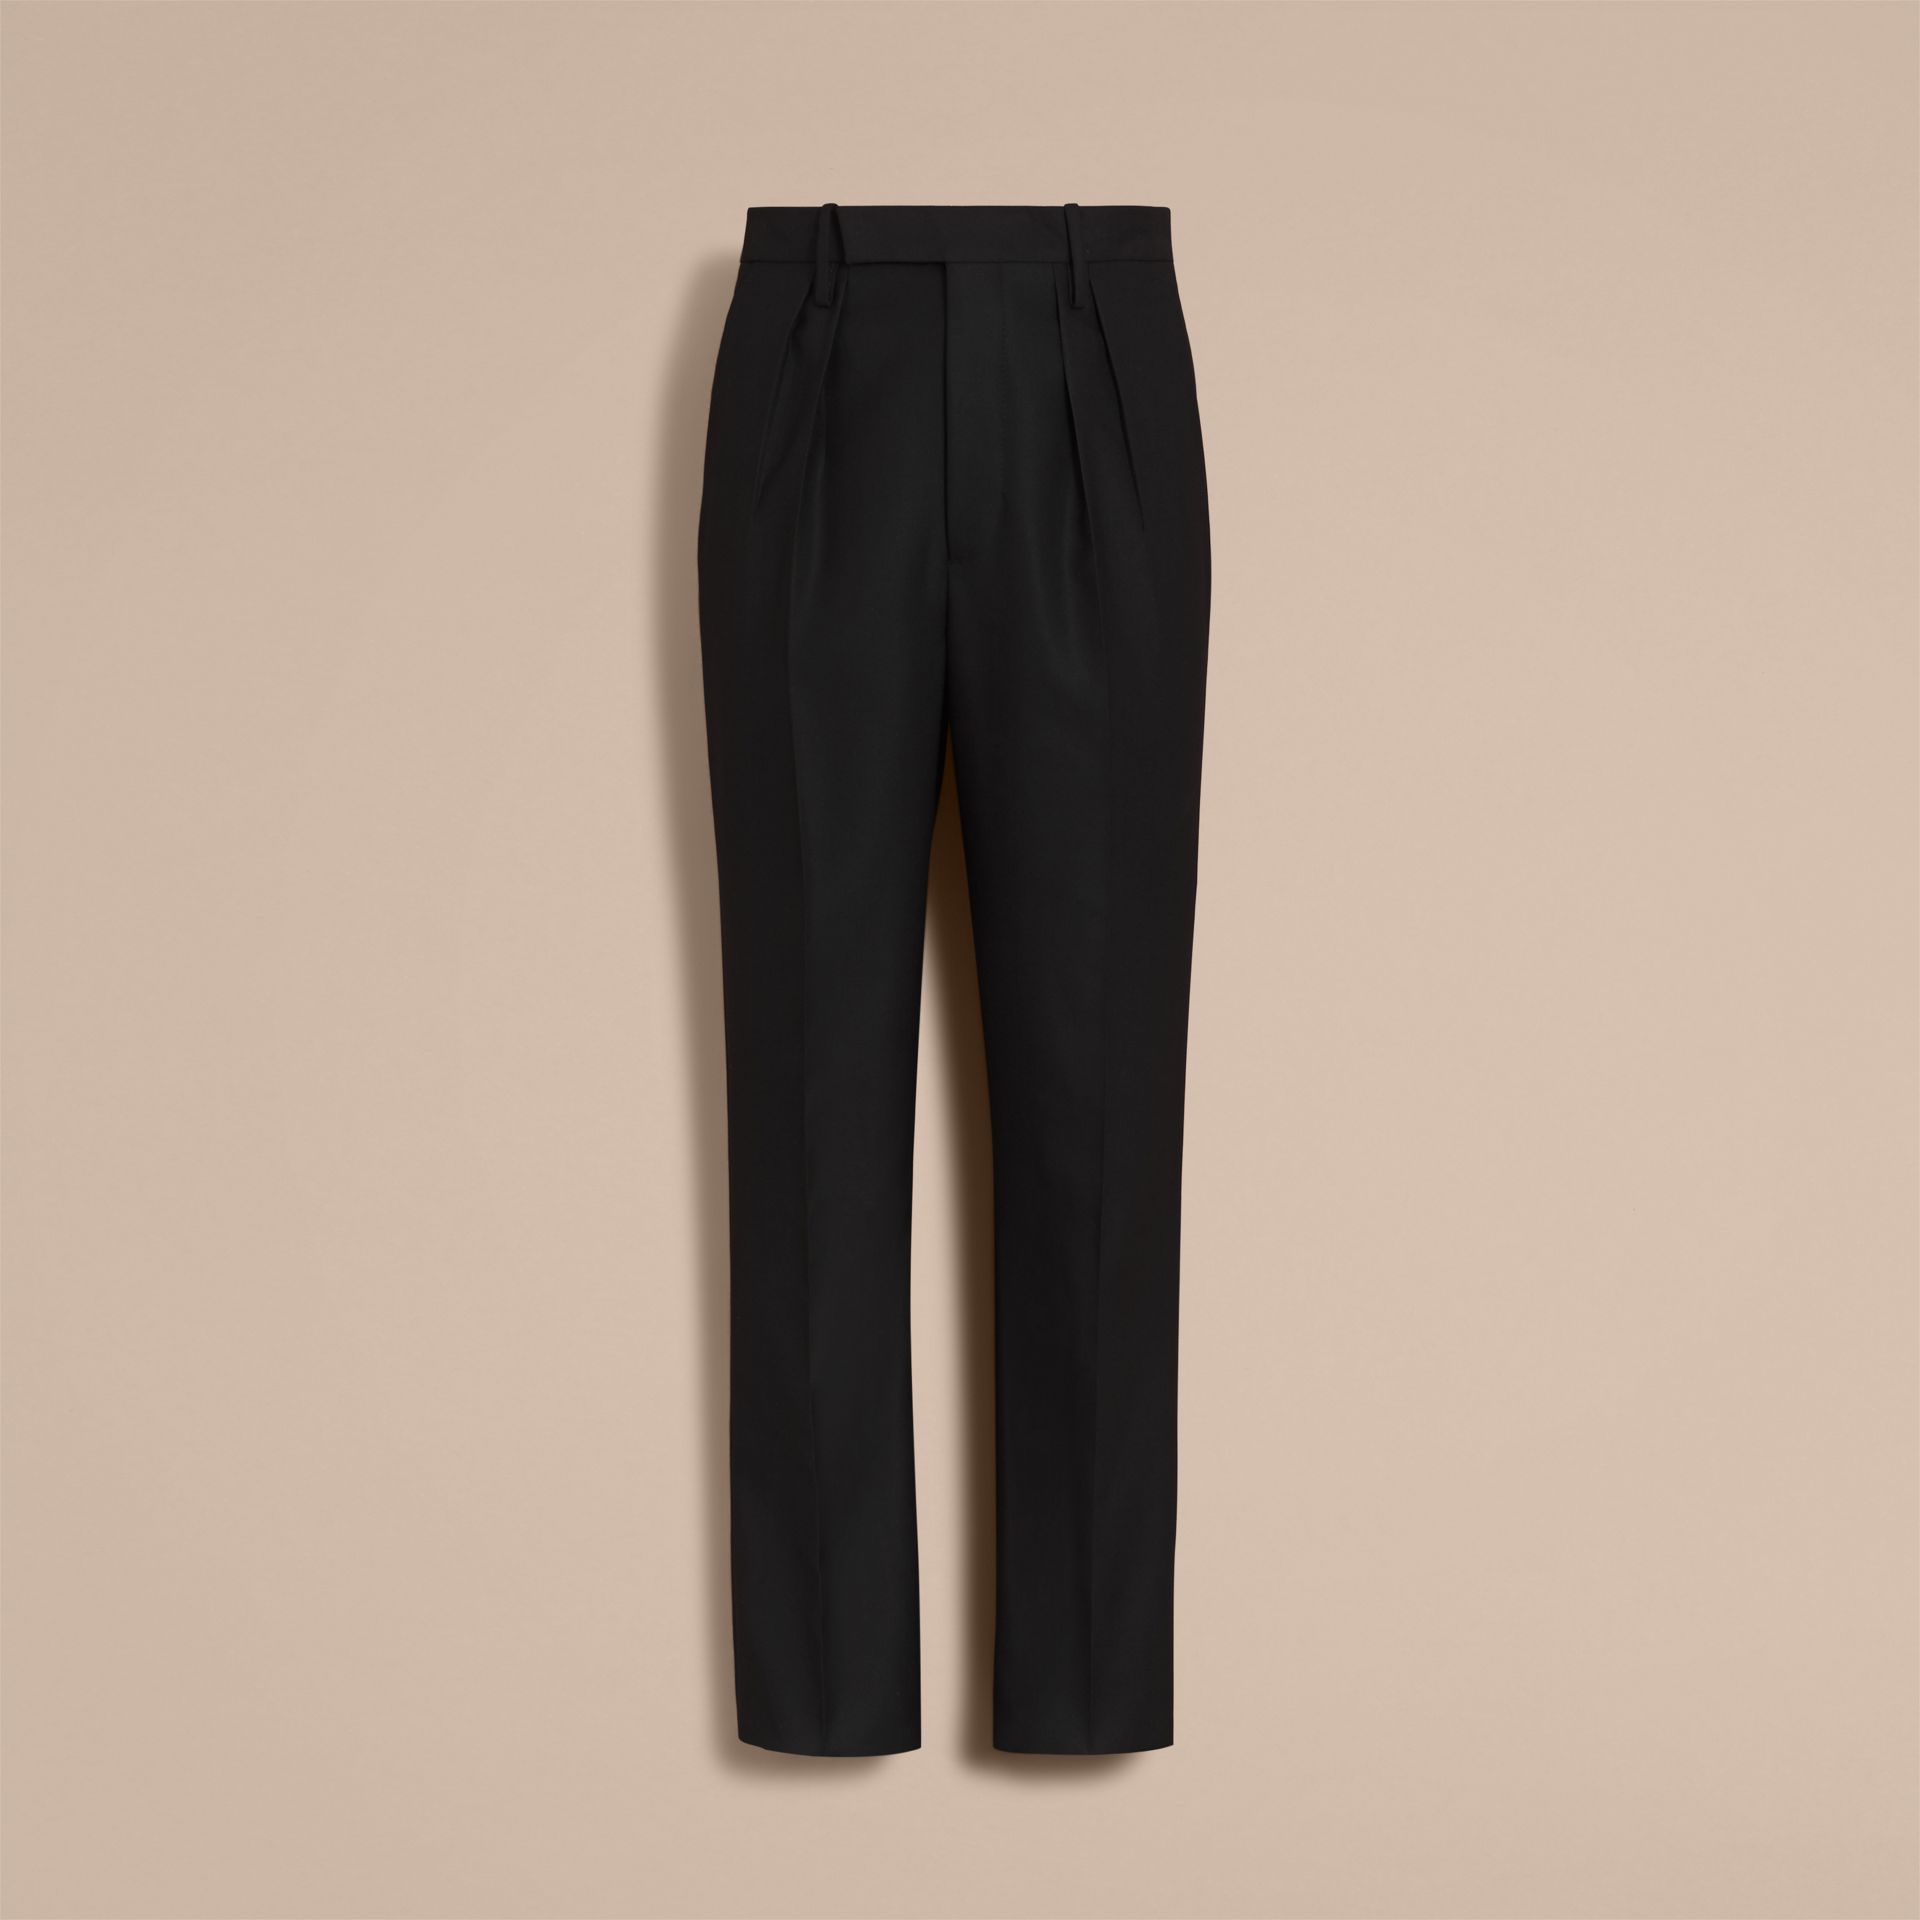 English Wool Mohair High-waist Tailored Trousers in Black - Men | Burberry - gallery image 3